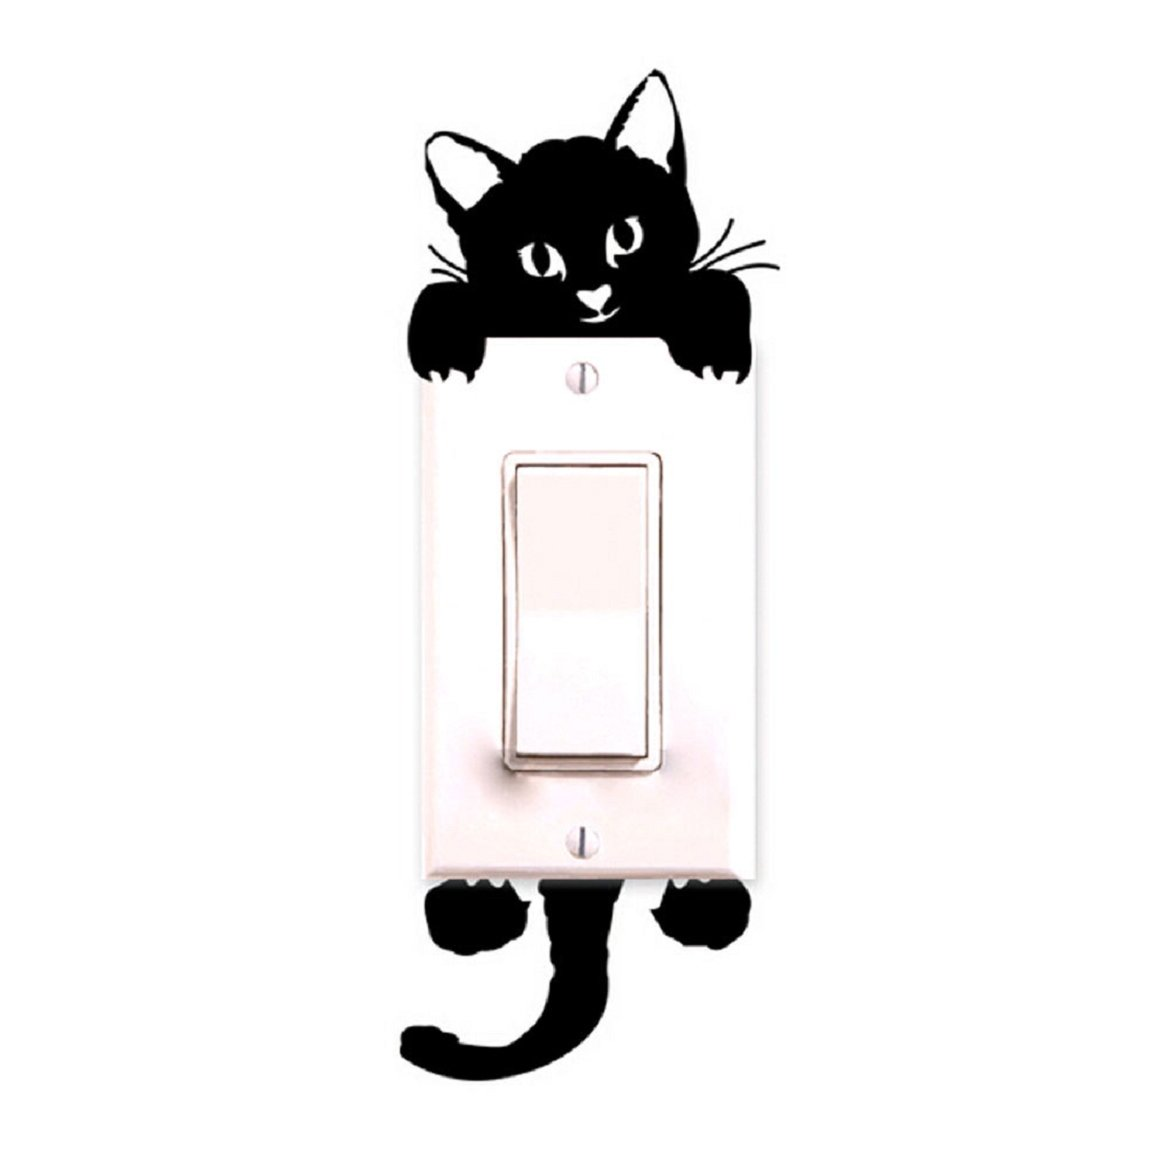 Sandistore Cat Wall Stickers Light Switch Decor Decals Art Mural Baby Nursery Room